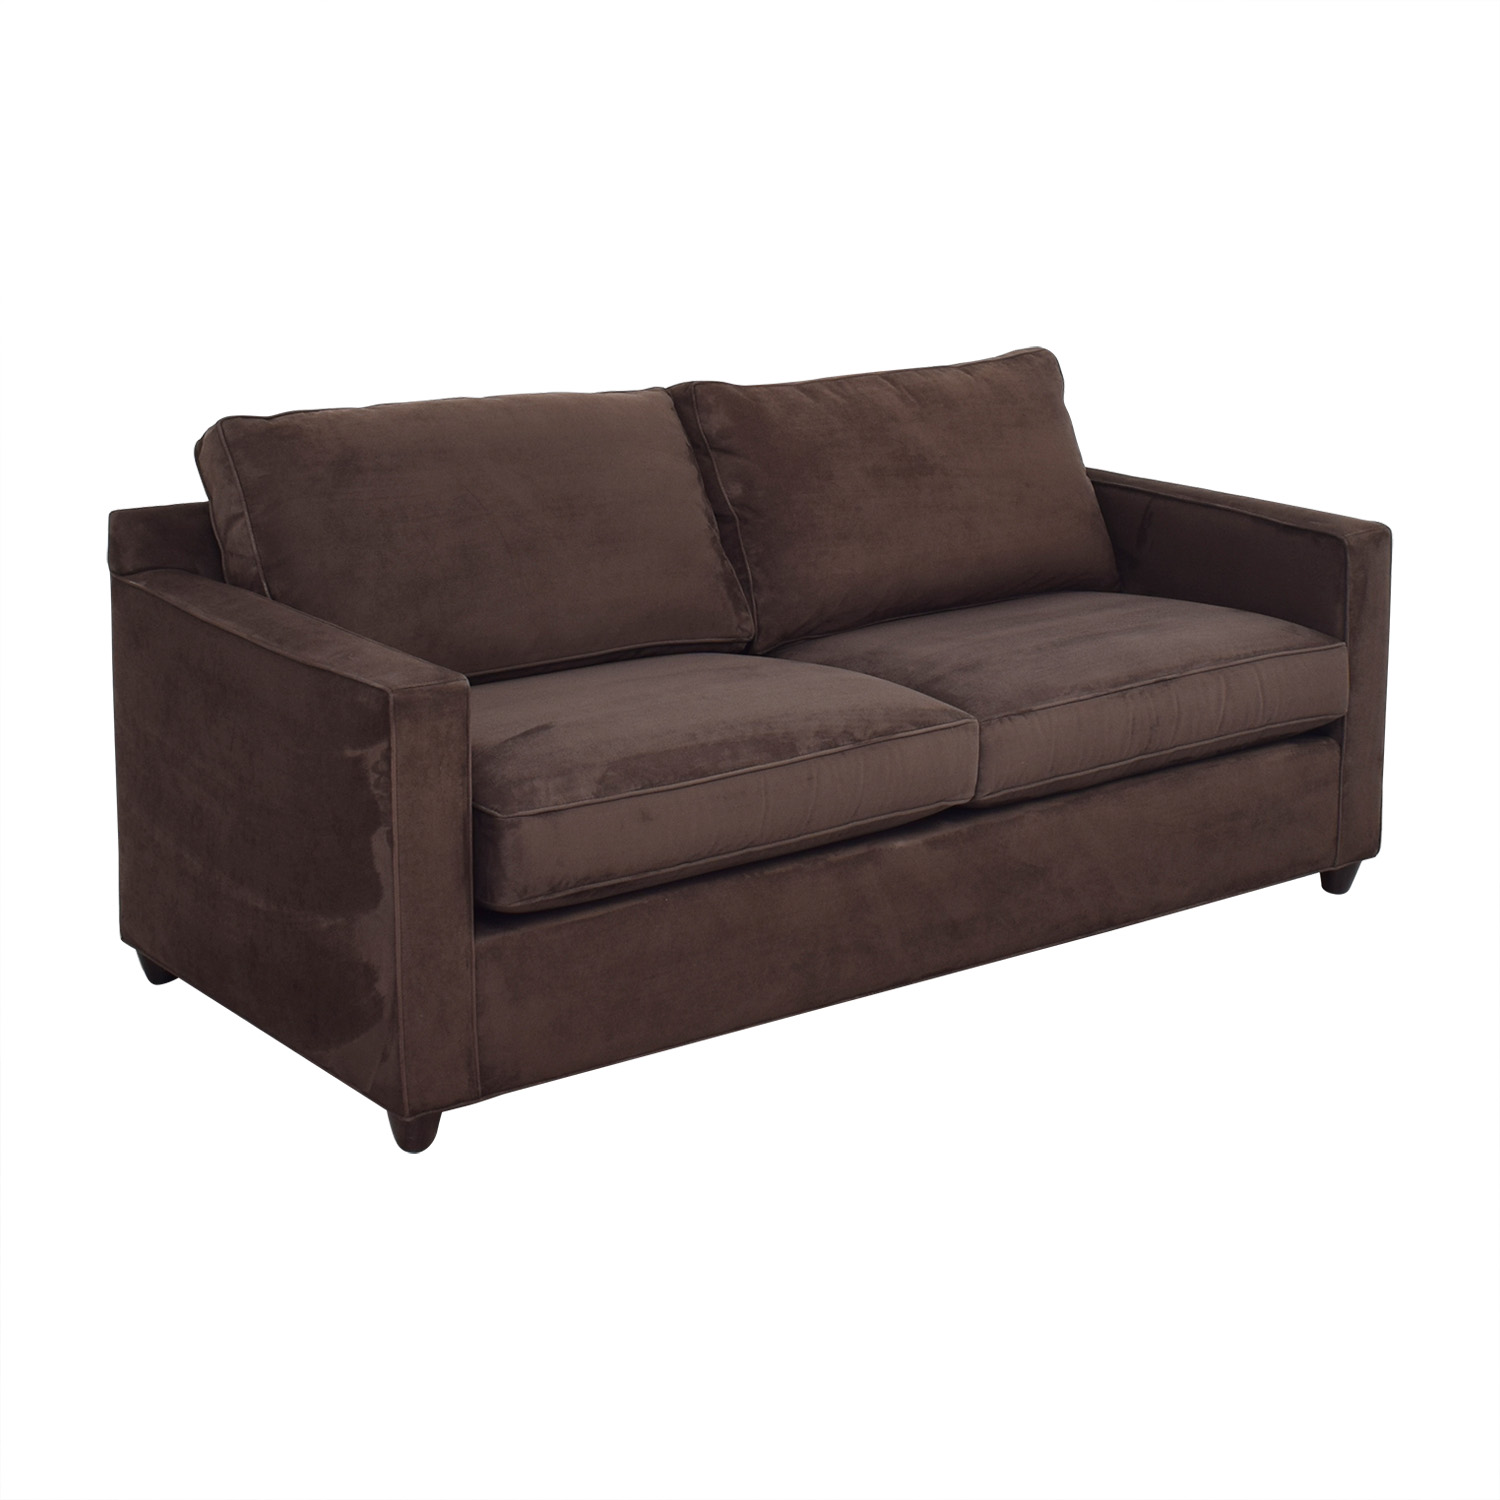 Crate & Barrel Crate & Barrel Sofa price